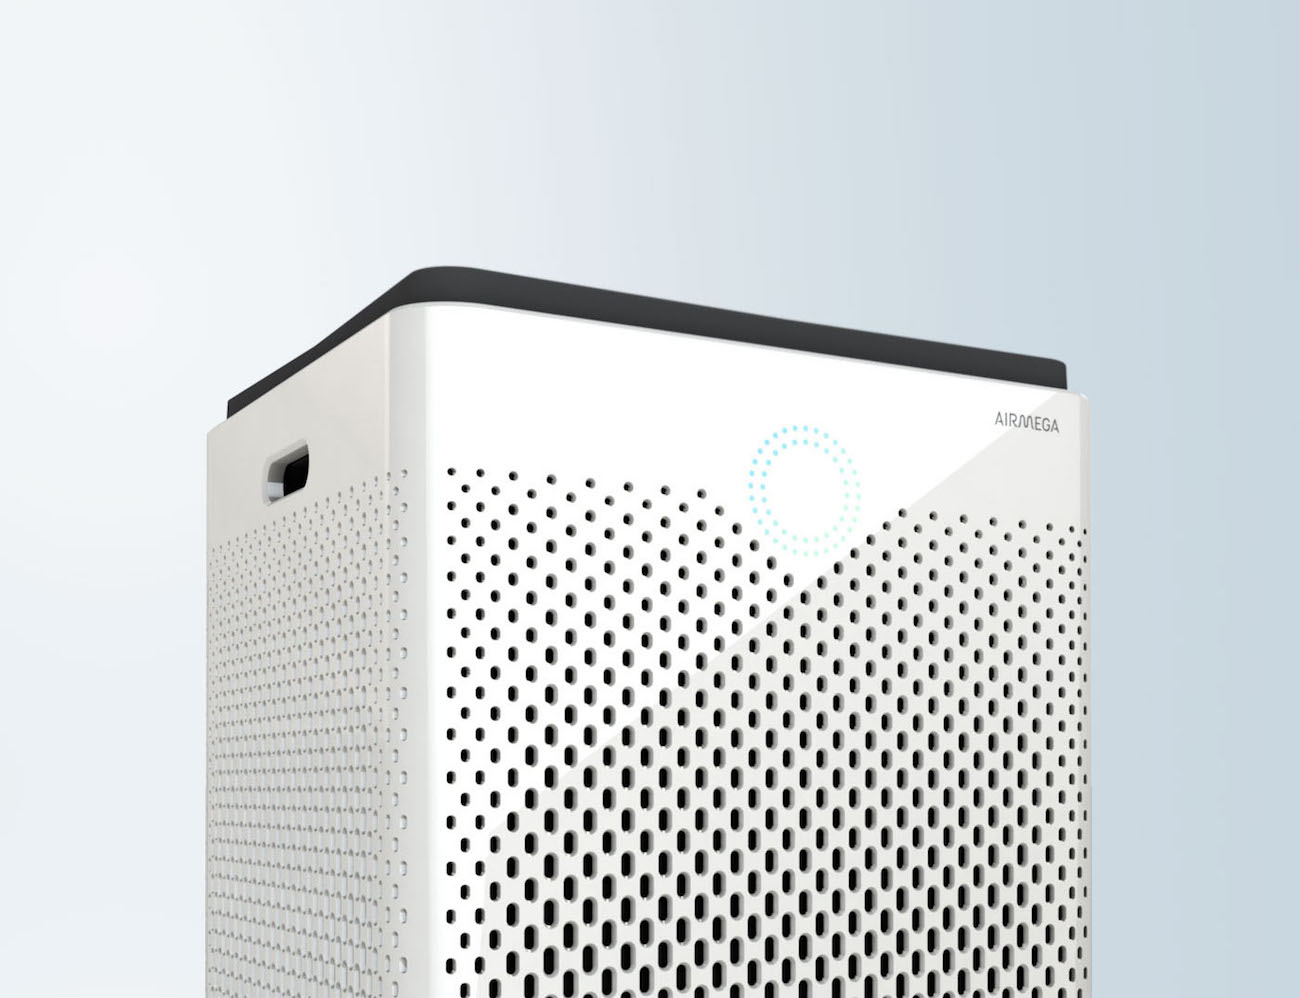 airmega-the-smart-air-purifier-03